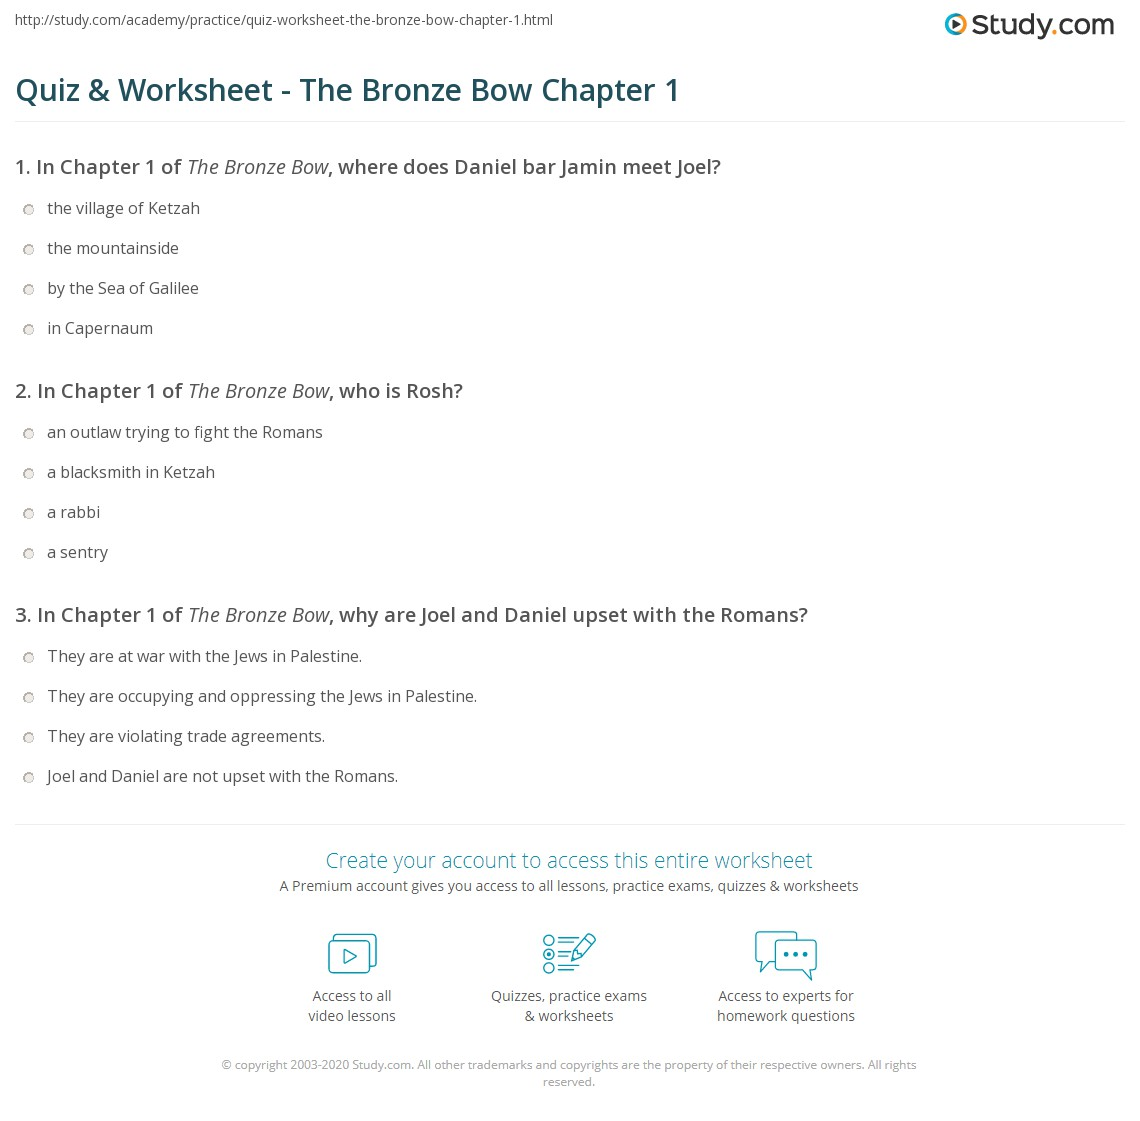 Print The Bronze Bow Chapter 1 Summary Worksheet